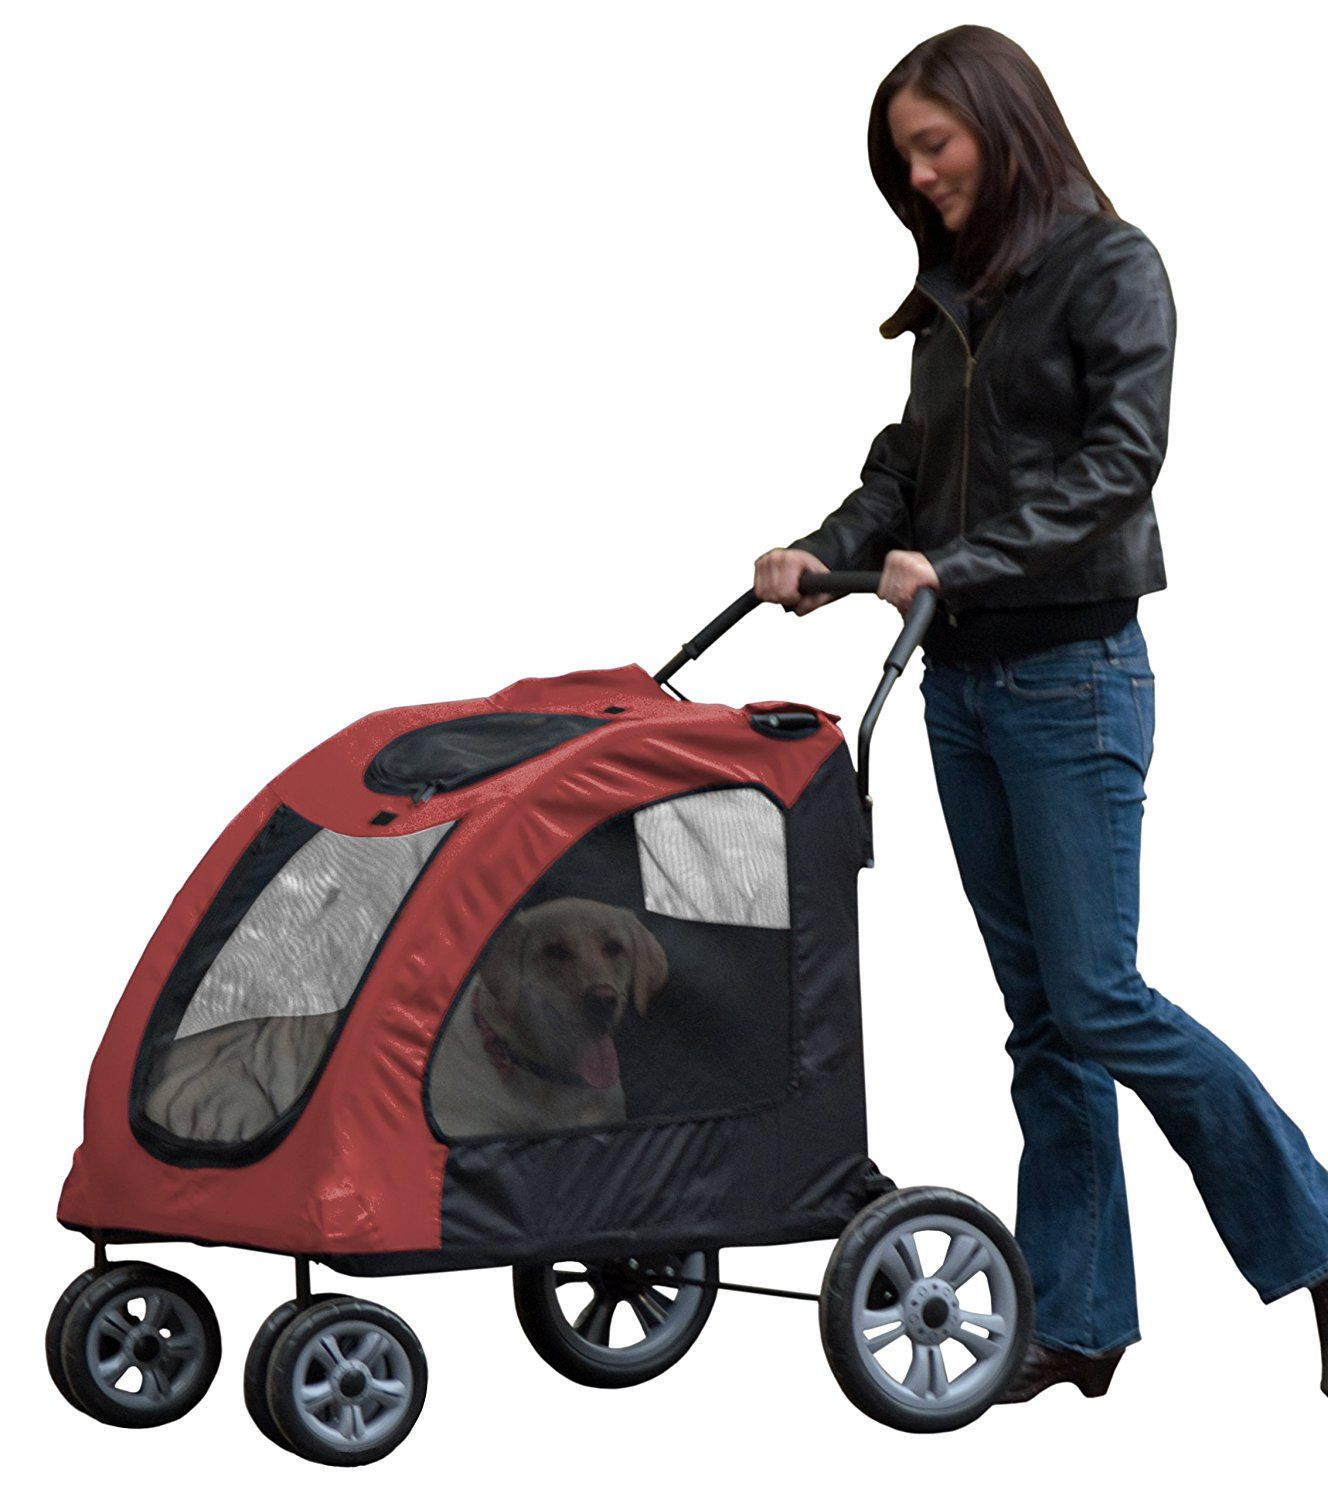 Pet Gear Expedition Pet Stroller for cats and dogs up to 150-pounds. * Special dog product just for you. See it now! : Dog Carriers and Travel Products